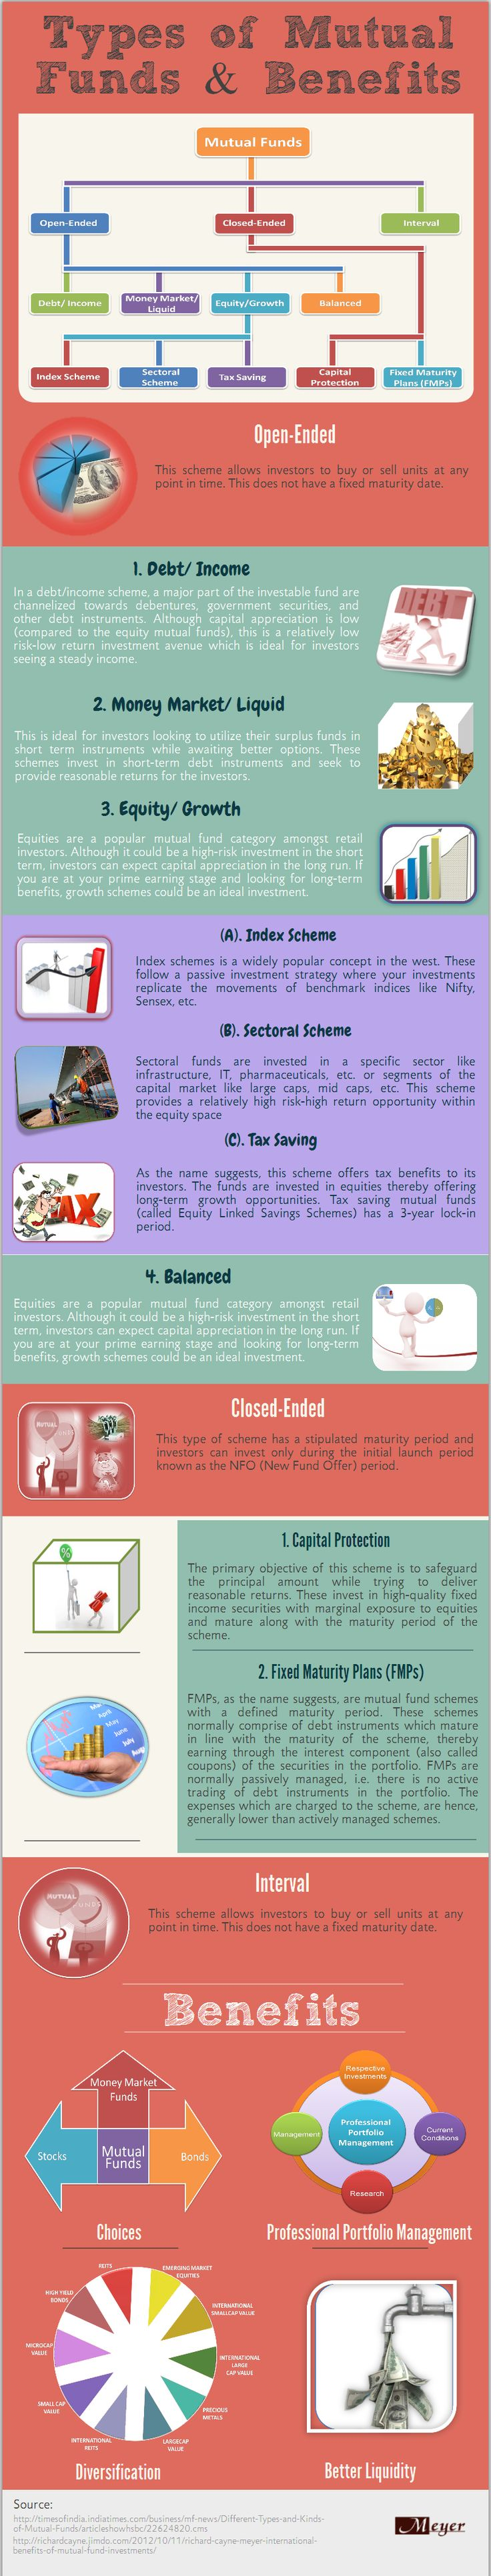 Types of Mutual Funds & Benefits